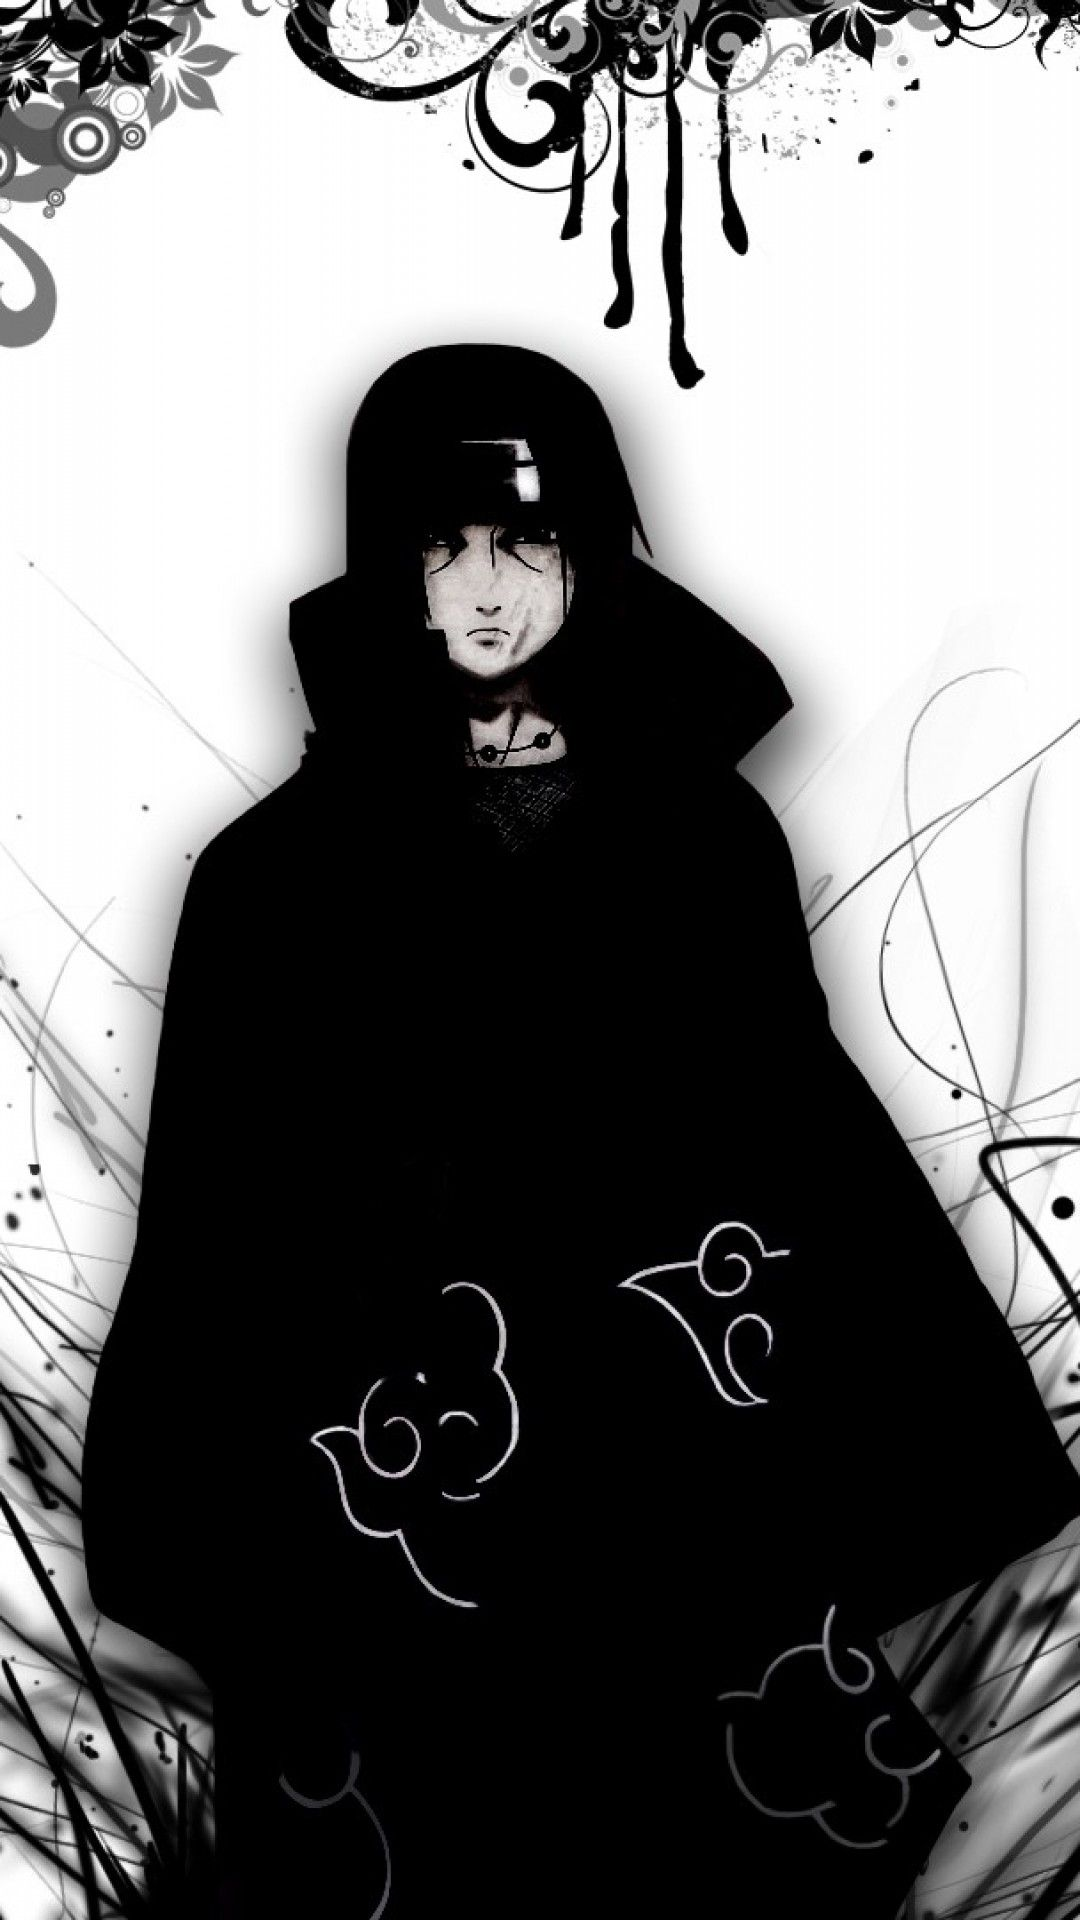 Itachi Aesthetic Wallpapers Top Free Itachi Aesthetic Backgrounds Wallpaperaccess